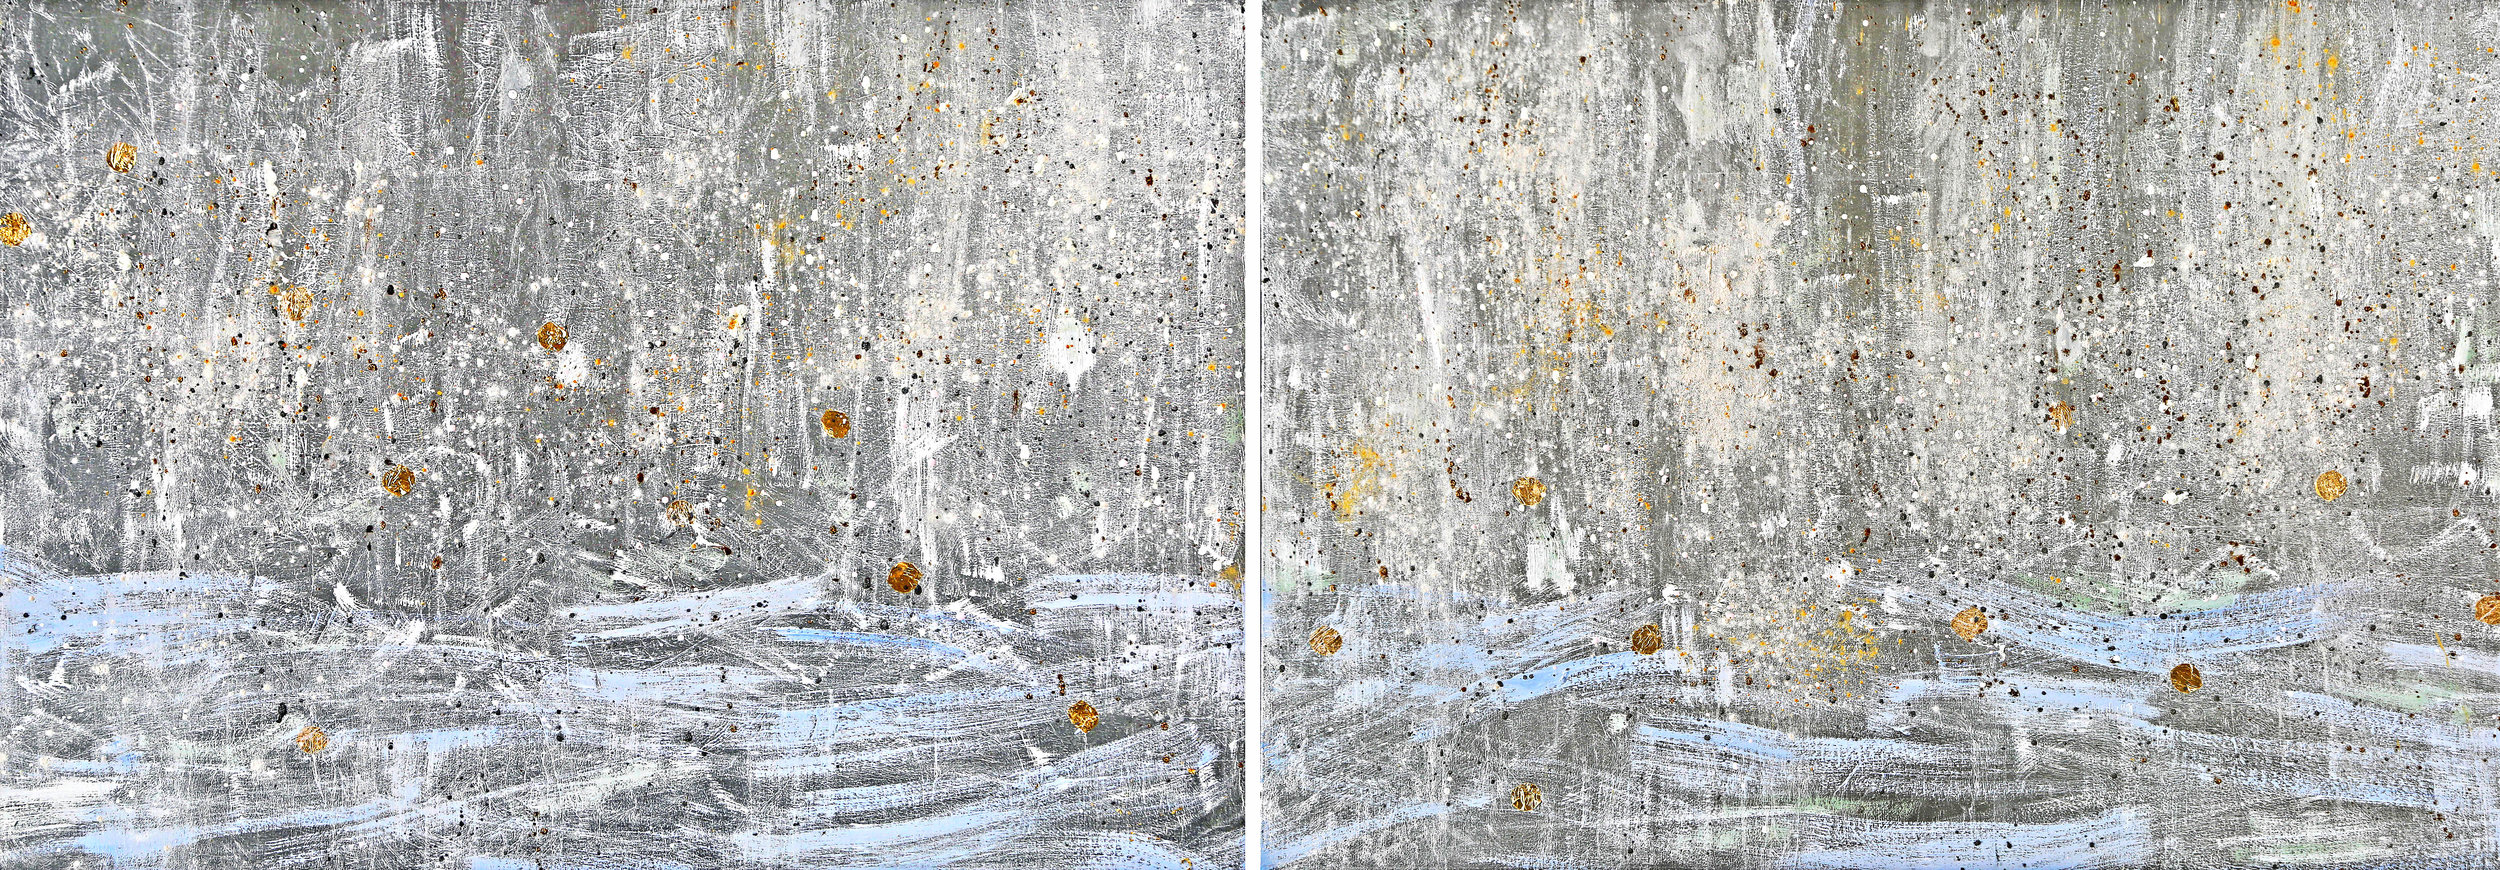 Freedom I & II#30 x 80 in., total, diptych